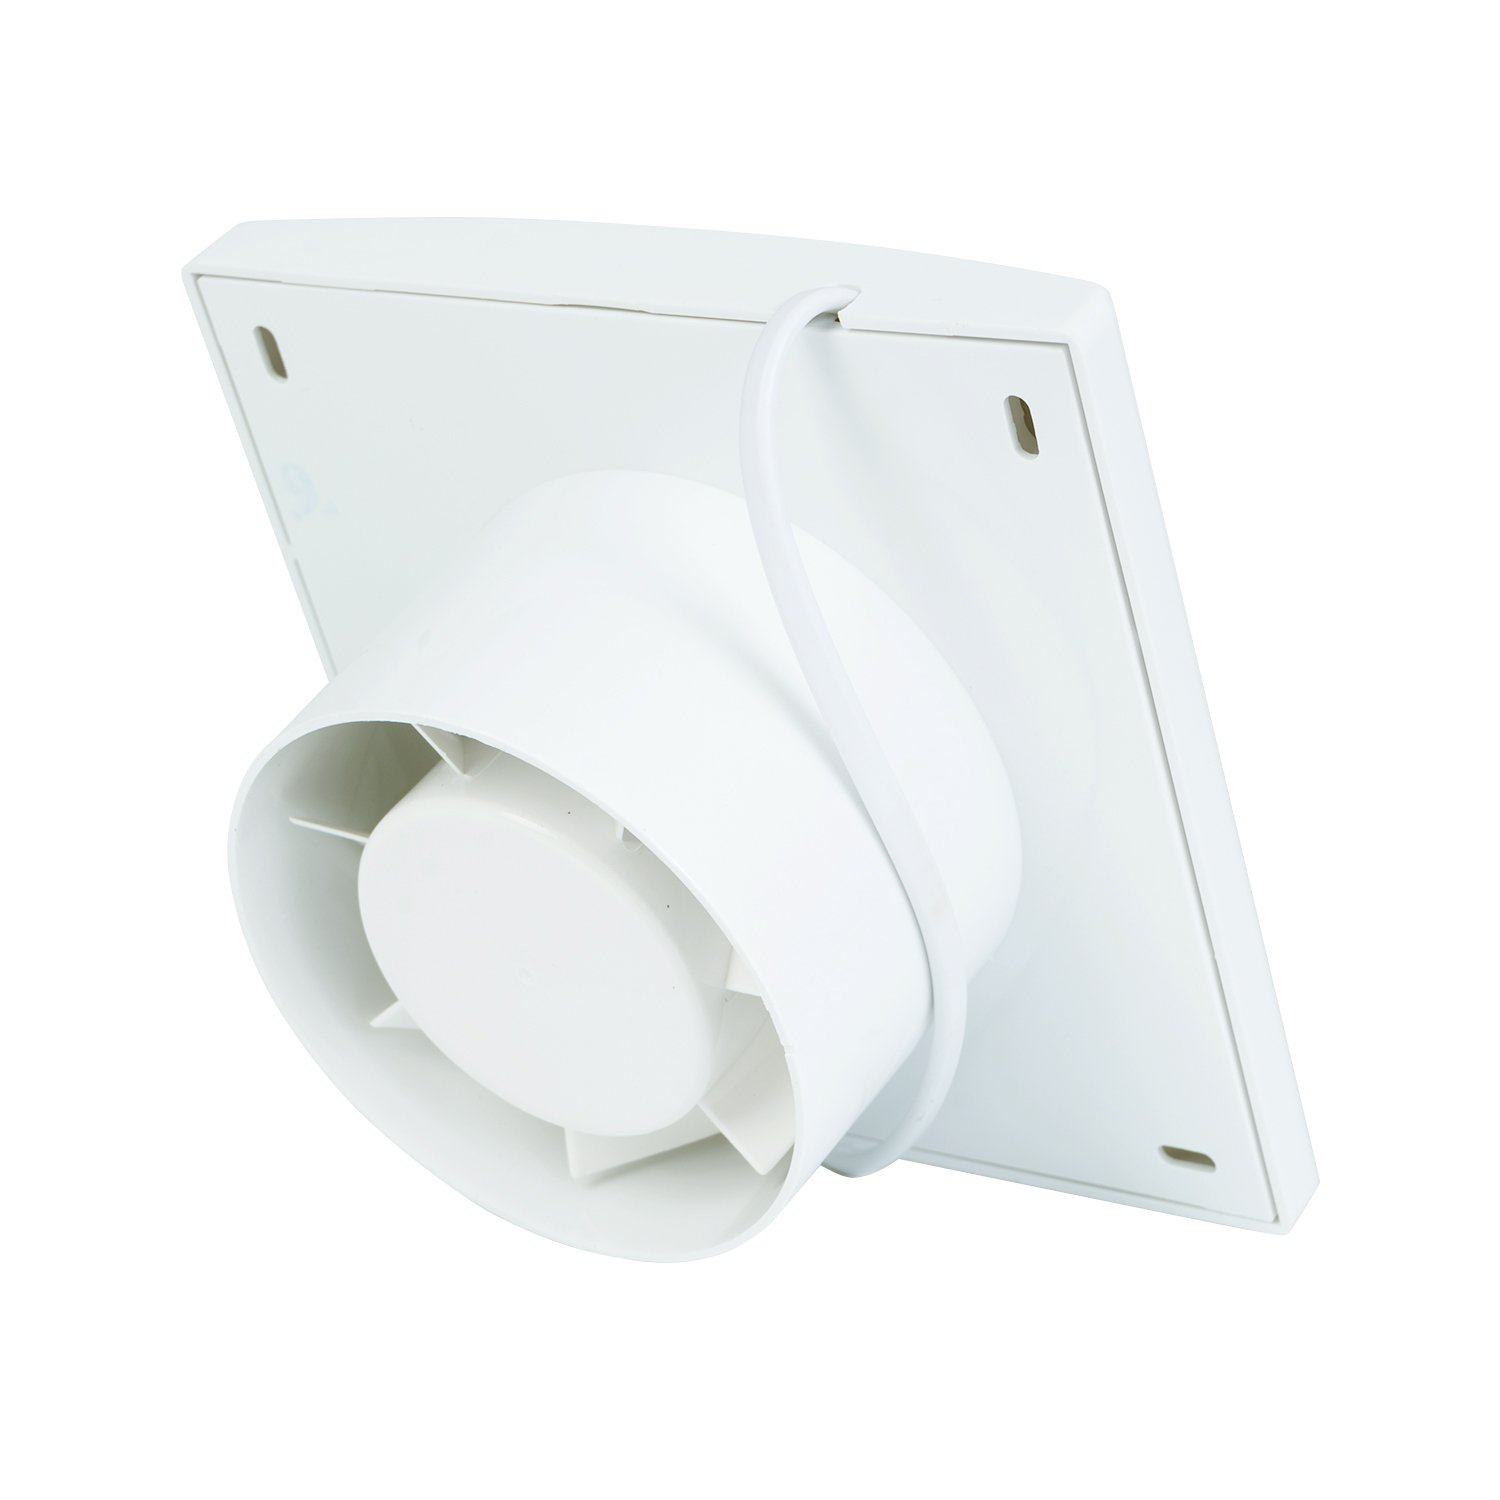 Ventilation Exhaust Fan, HG POWER Strong Exhaust Extrator Fan Wall Mount & Ceiling Exhaust Fan Built-in Household Ventilation Fans (PI372) by HG POWER (Image #4)